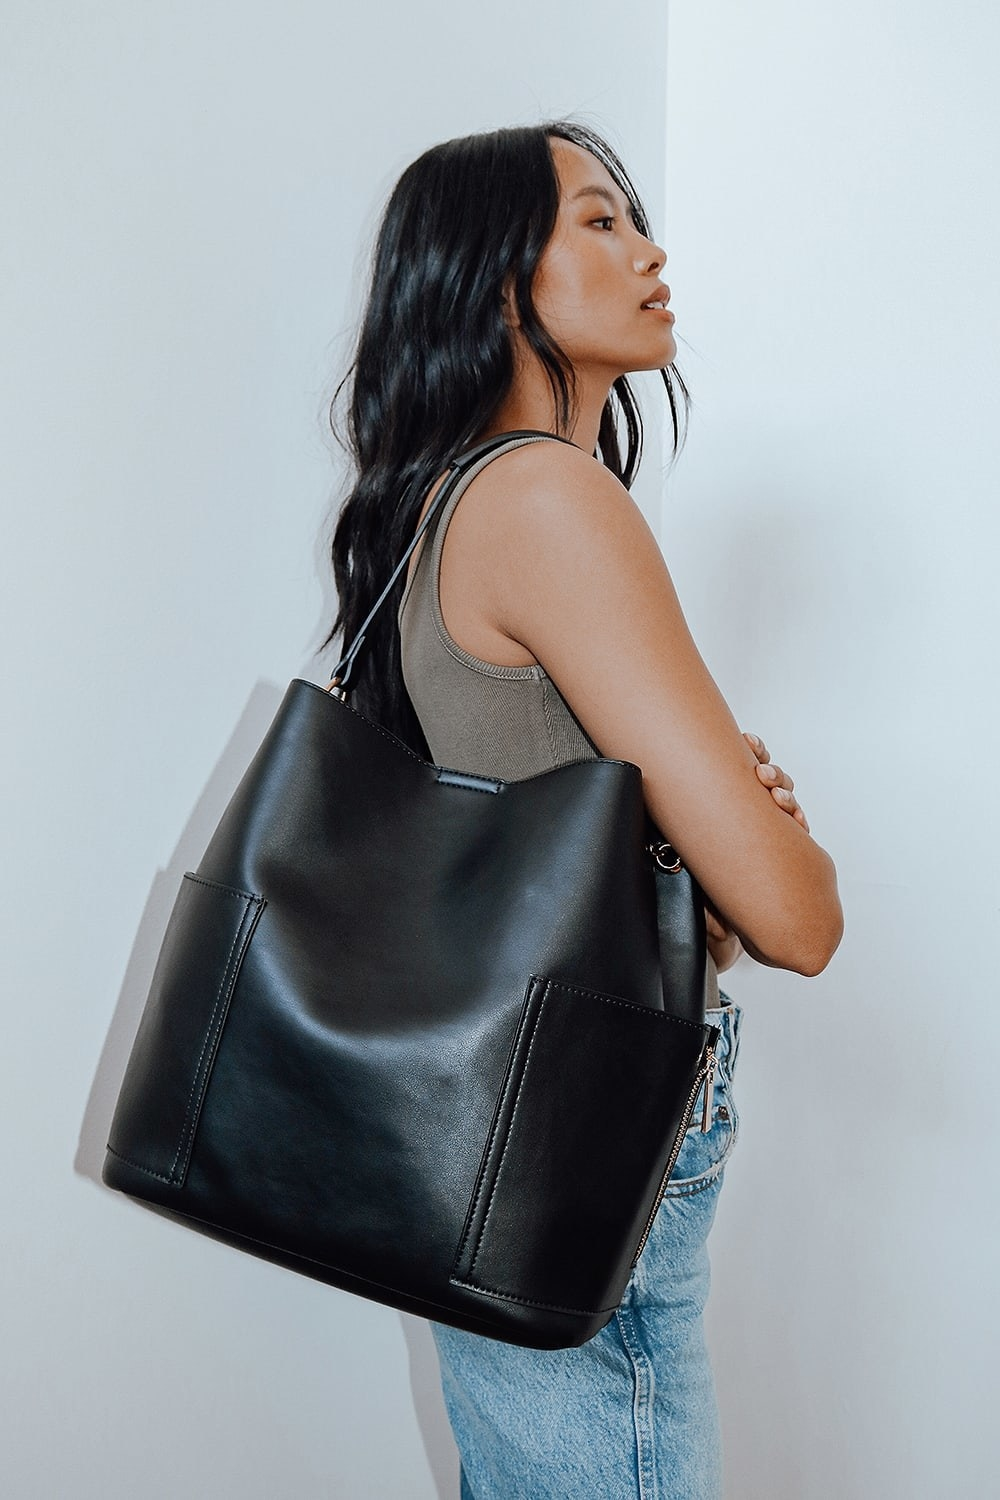 Model wearing black tote bag over shoulder